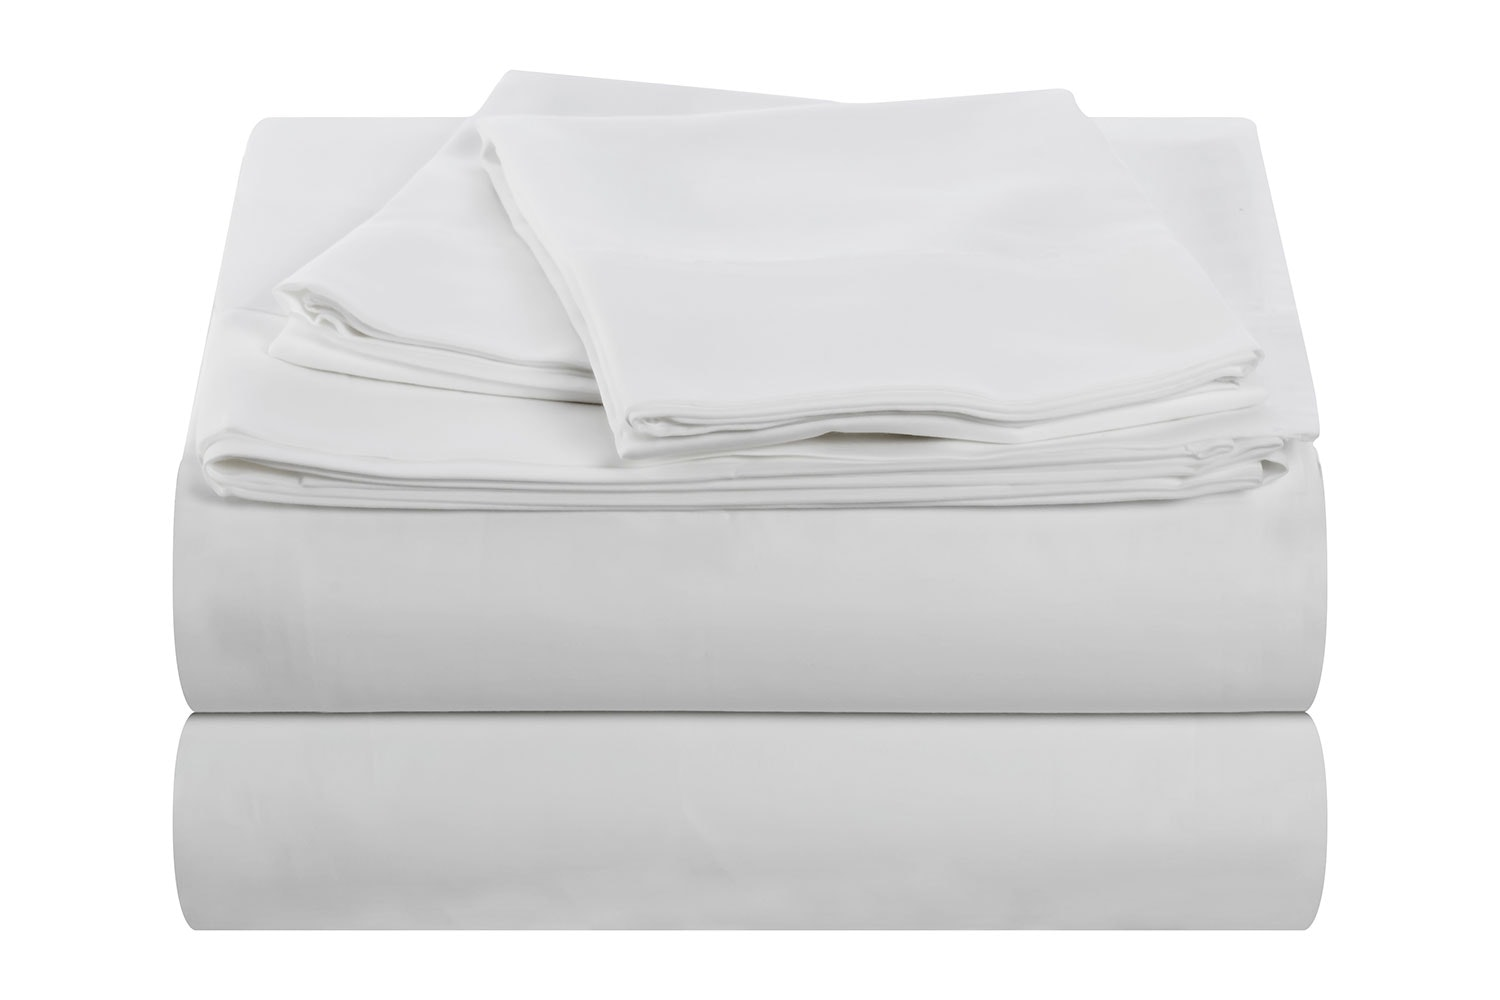 Temperature Regulating Sheet Set by NuSleep